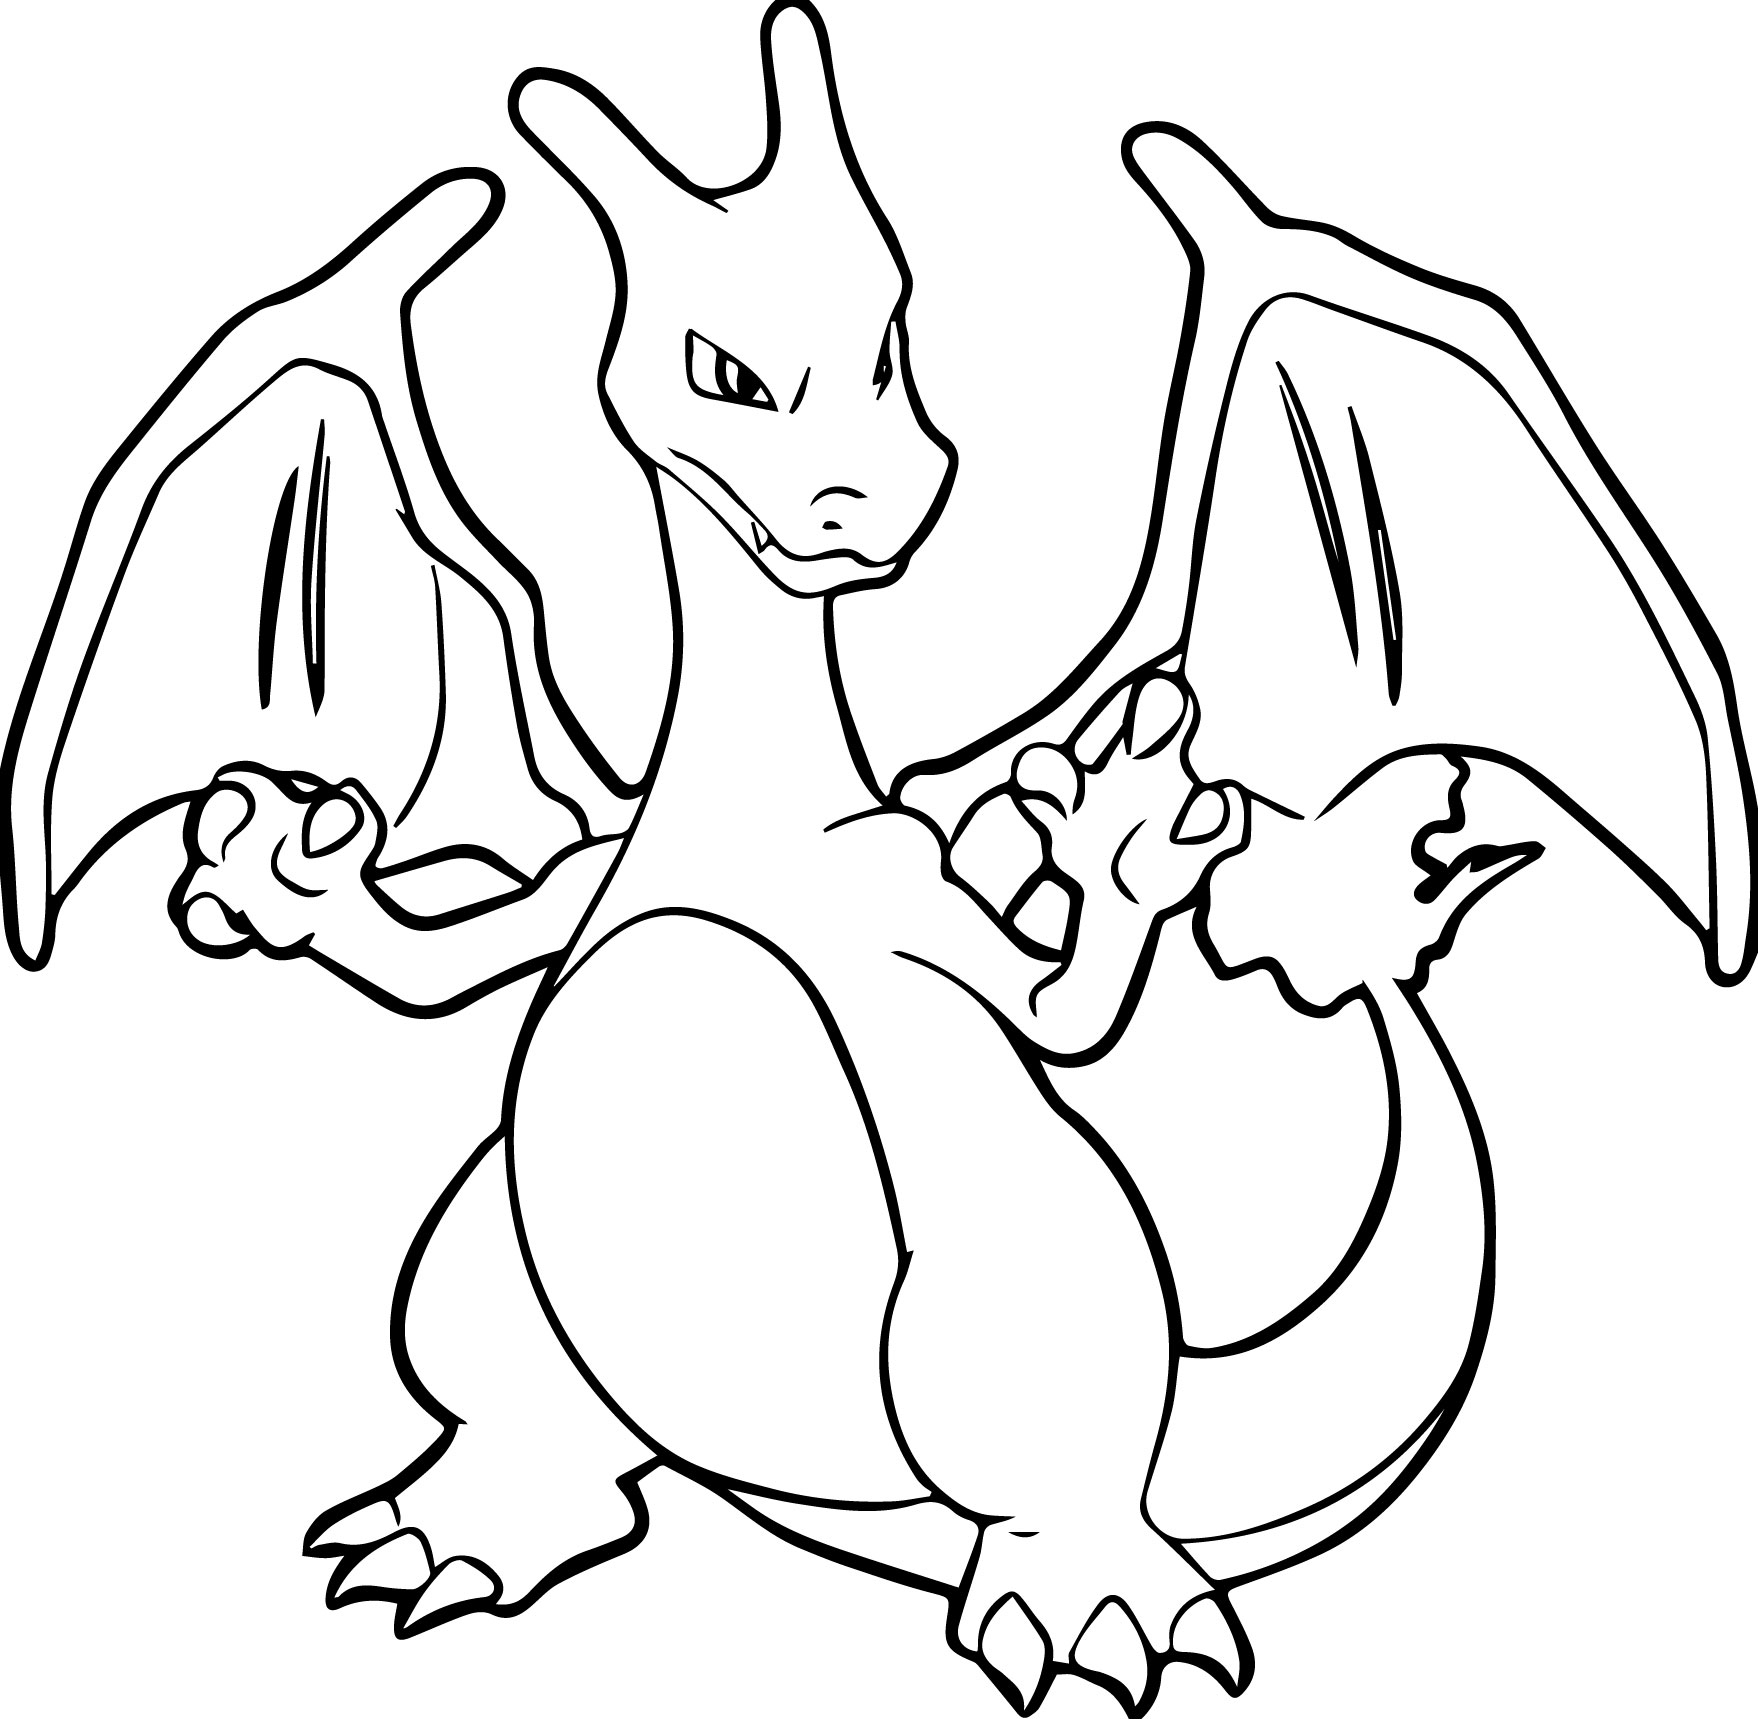 Get This Free Pokemon Coloring Page To Print 33604 Free Photos